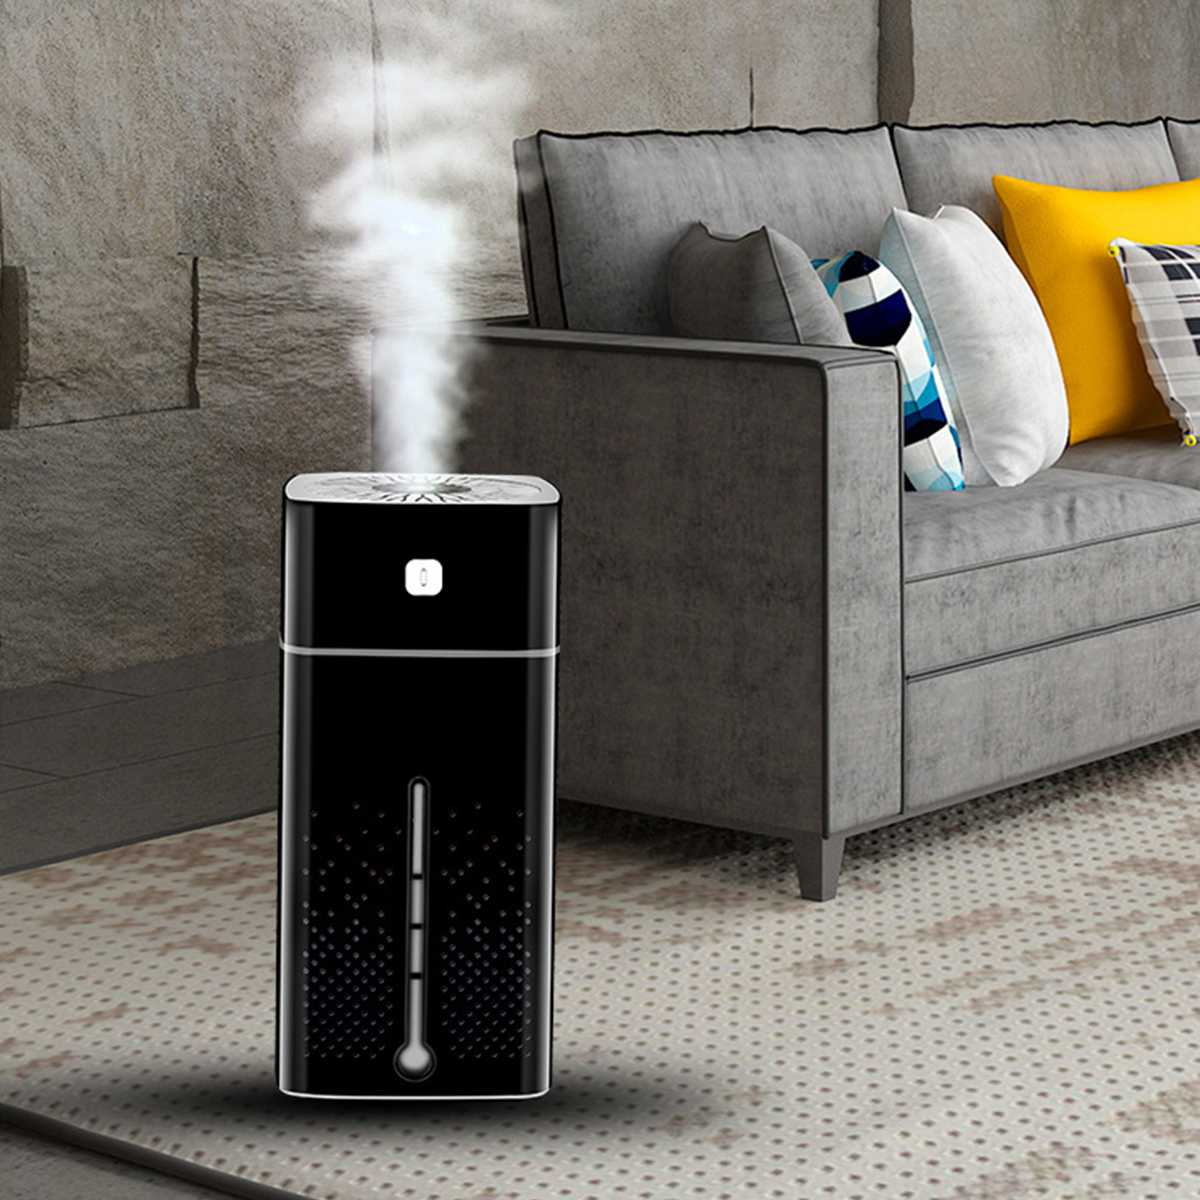 Household Air Purifier with Essential Aromas Oil Diffused and 7 Color LED Lights Powered by USB 3